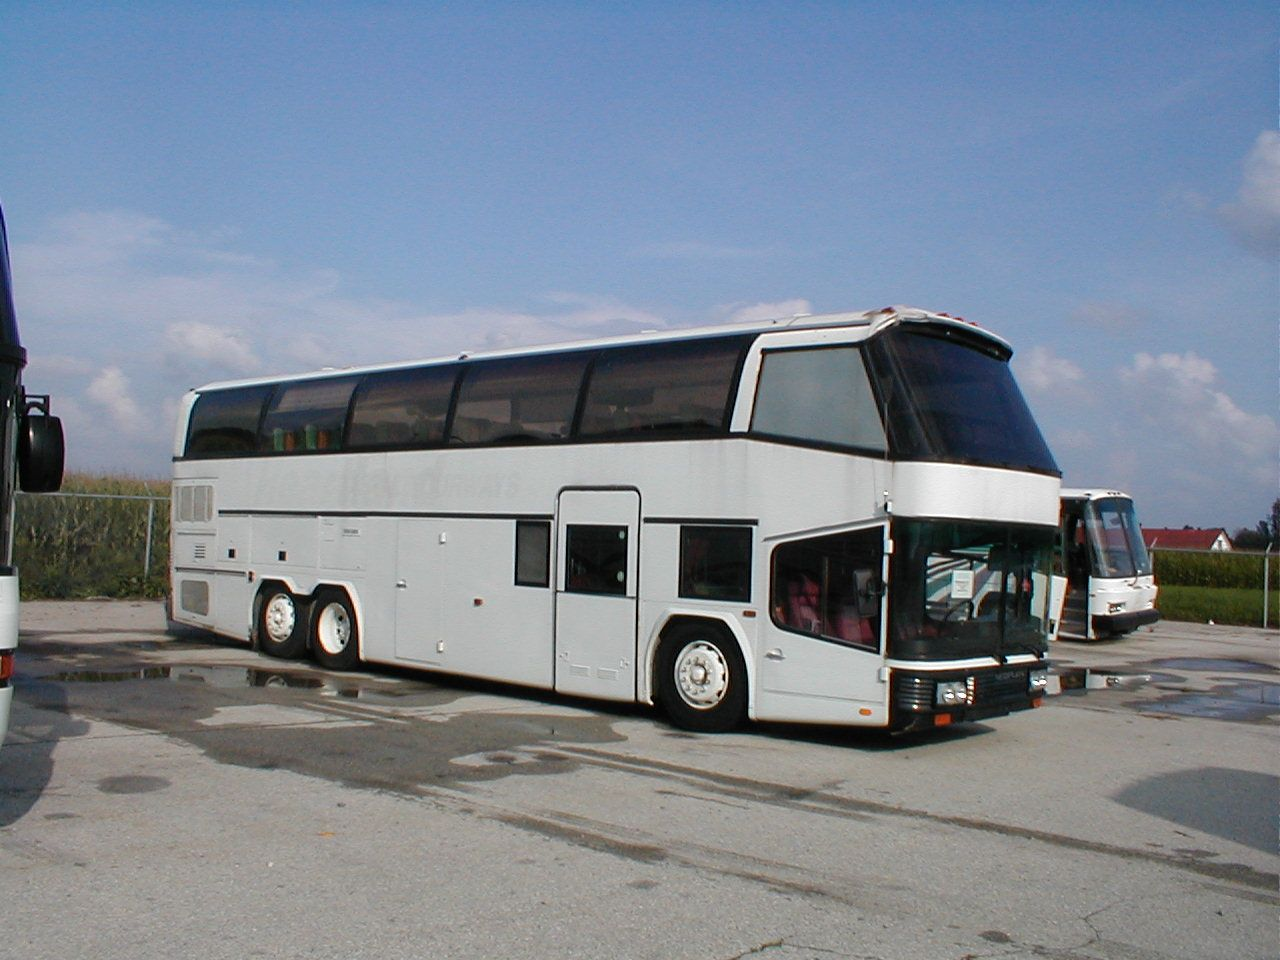 Converted Neoplan penger bus, two story motorhome | Bus ... on gmc double decker bus, prevost double decker bus, leyland double decker bus, setra double decker bus, freightliner double decker bus, austin double decker bus, bentley double decker bus, mercedes double decker bus, volkswagen double decker bus, man double decker bus, mini double decker bus, mega double decker bus, gillig double decker bus, dennis double decker bus, volvo double decker bus, van hool double decker bus,